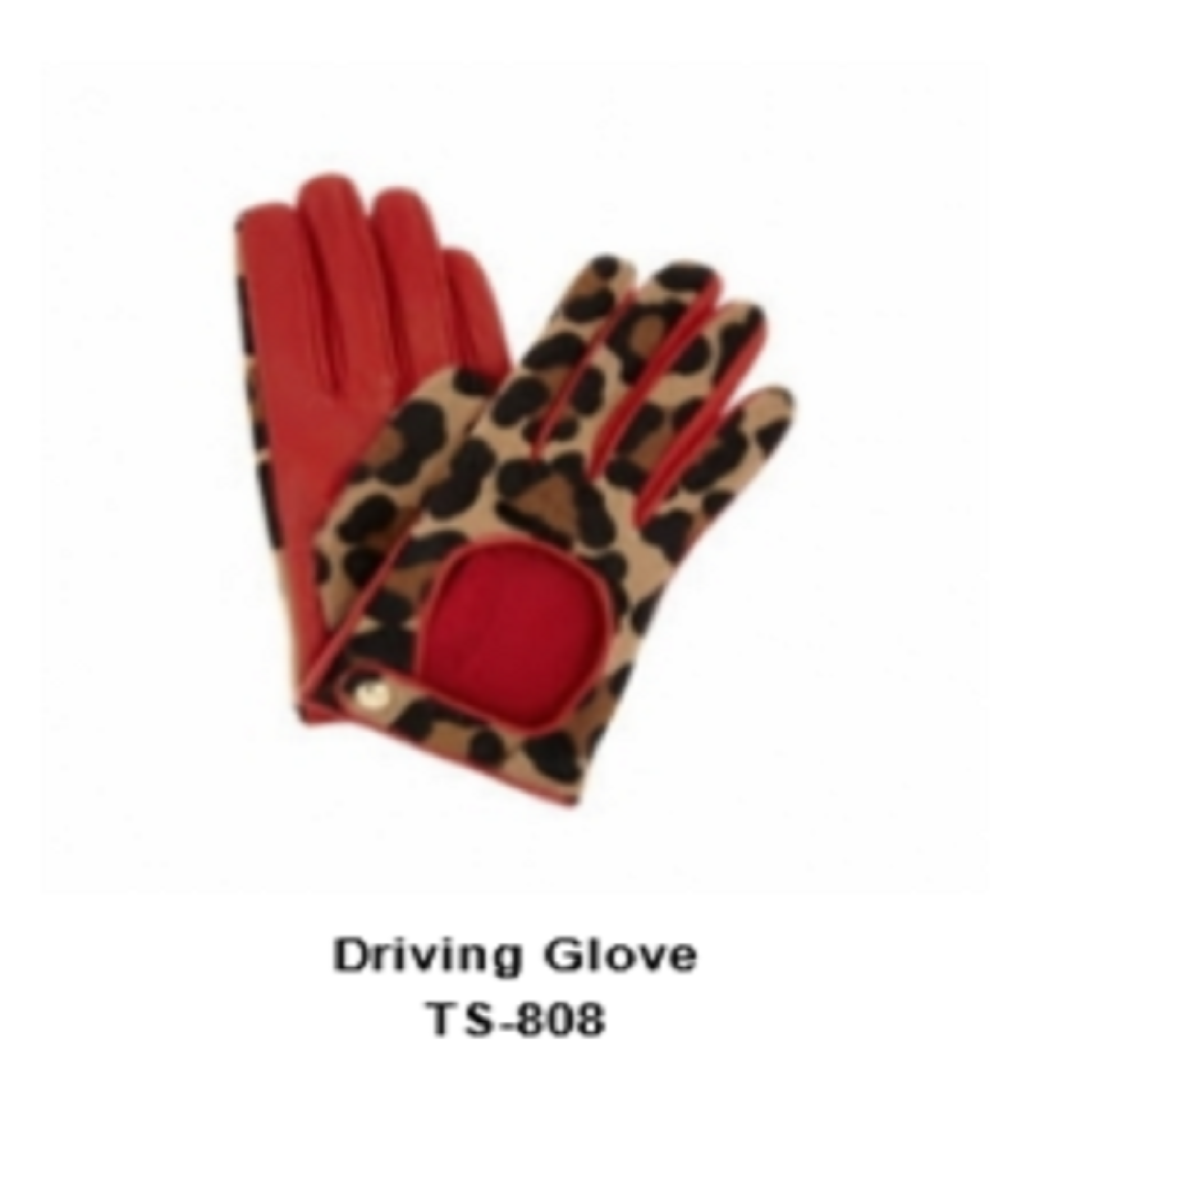 Leather Men's Fashion Driving Gloves Model No. TSI 808